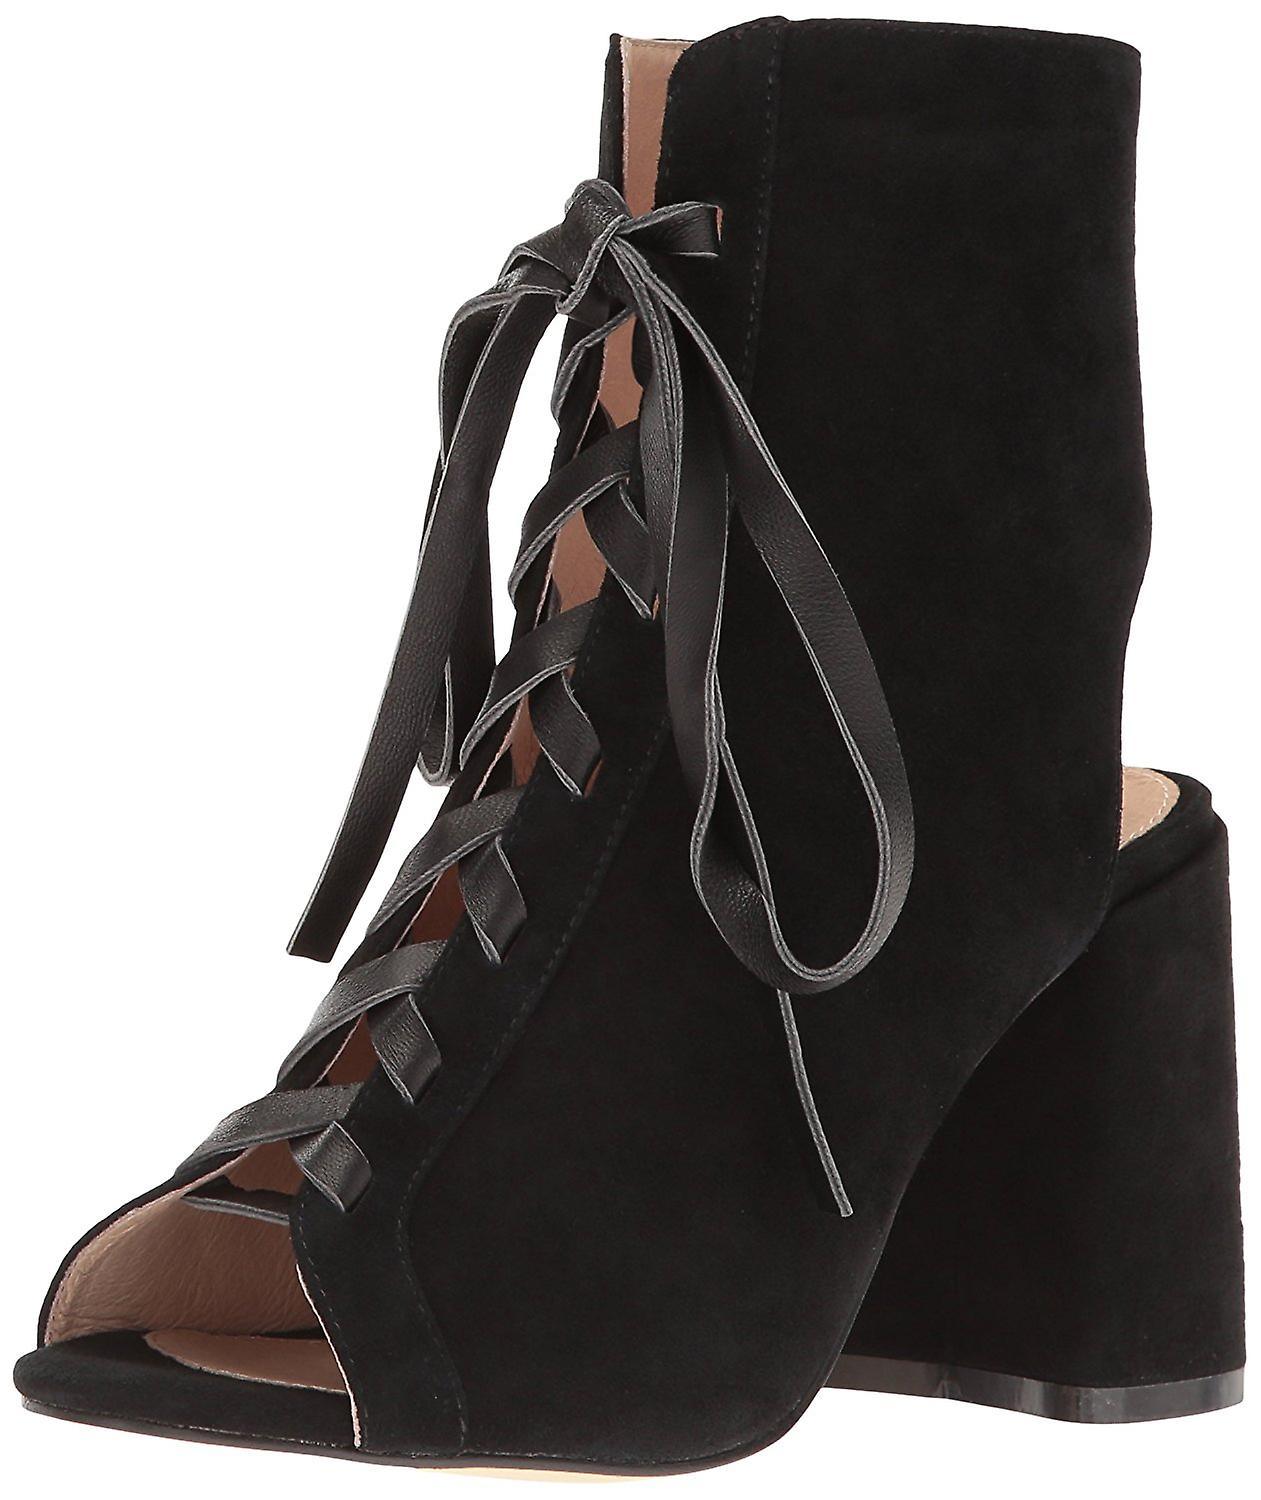 Charmian Ankle Bootie Shellys London femminile